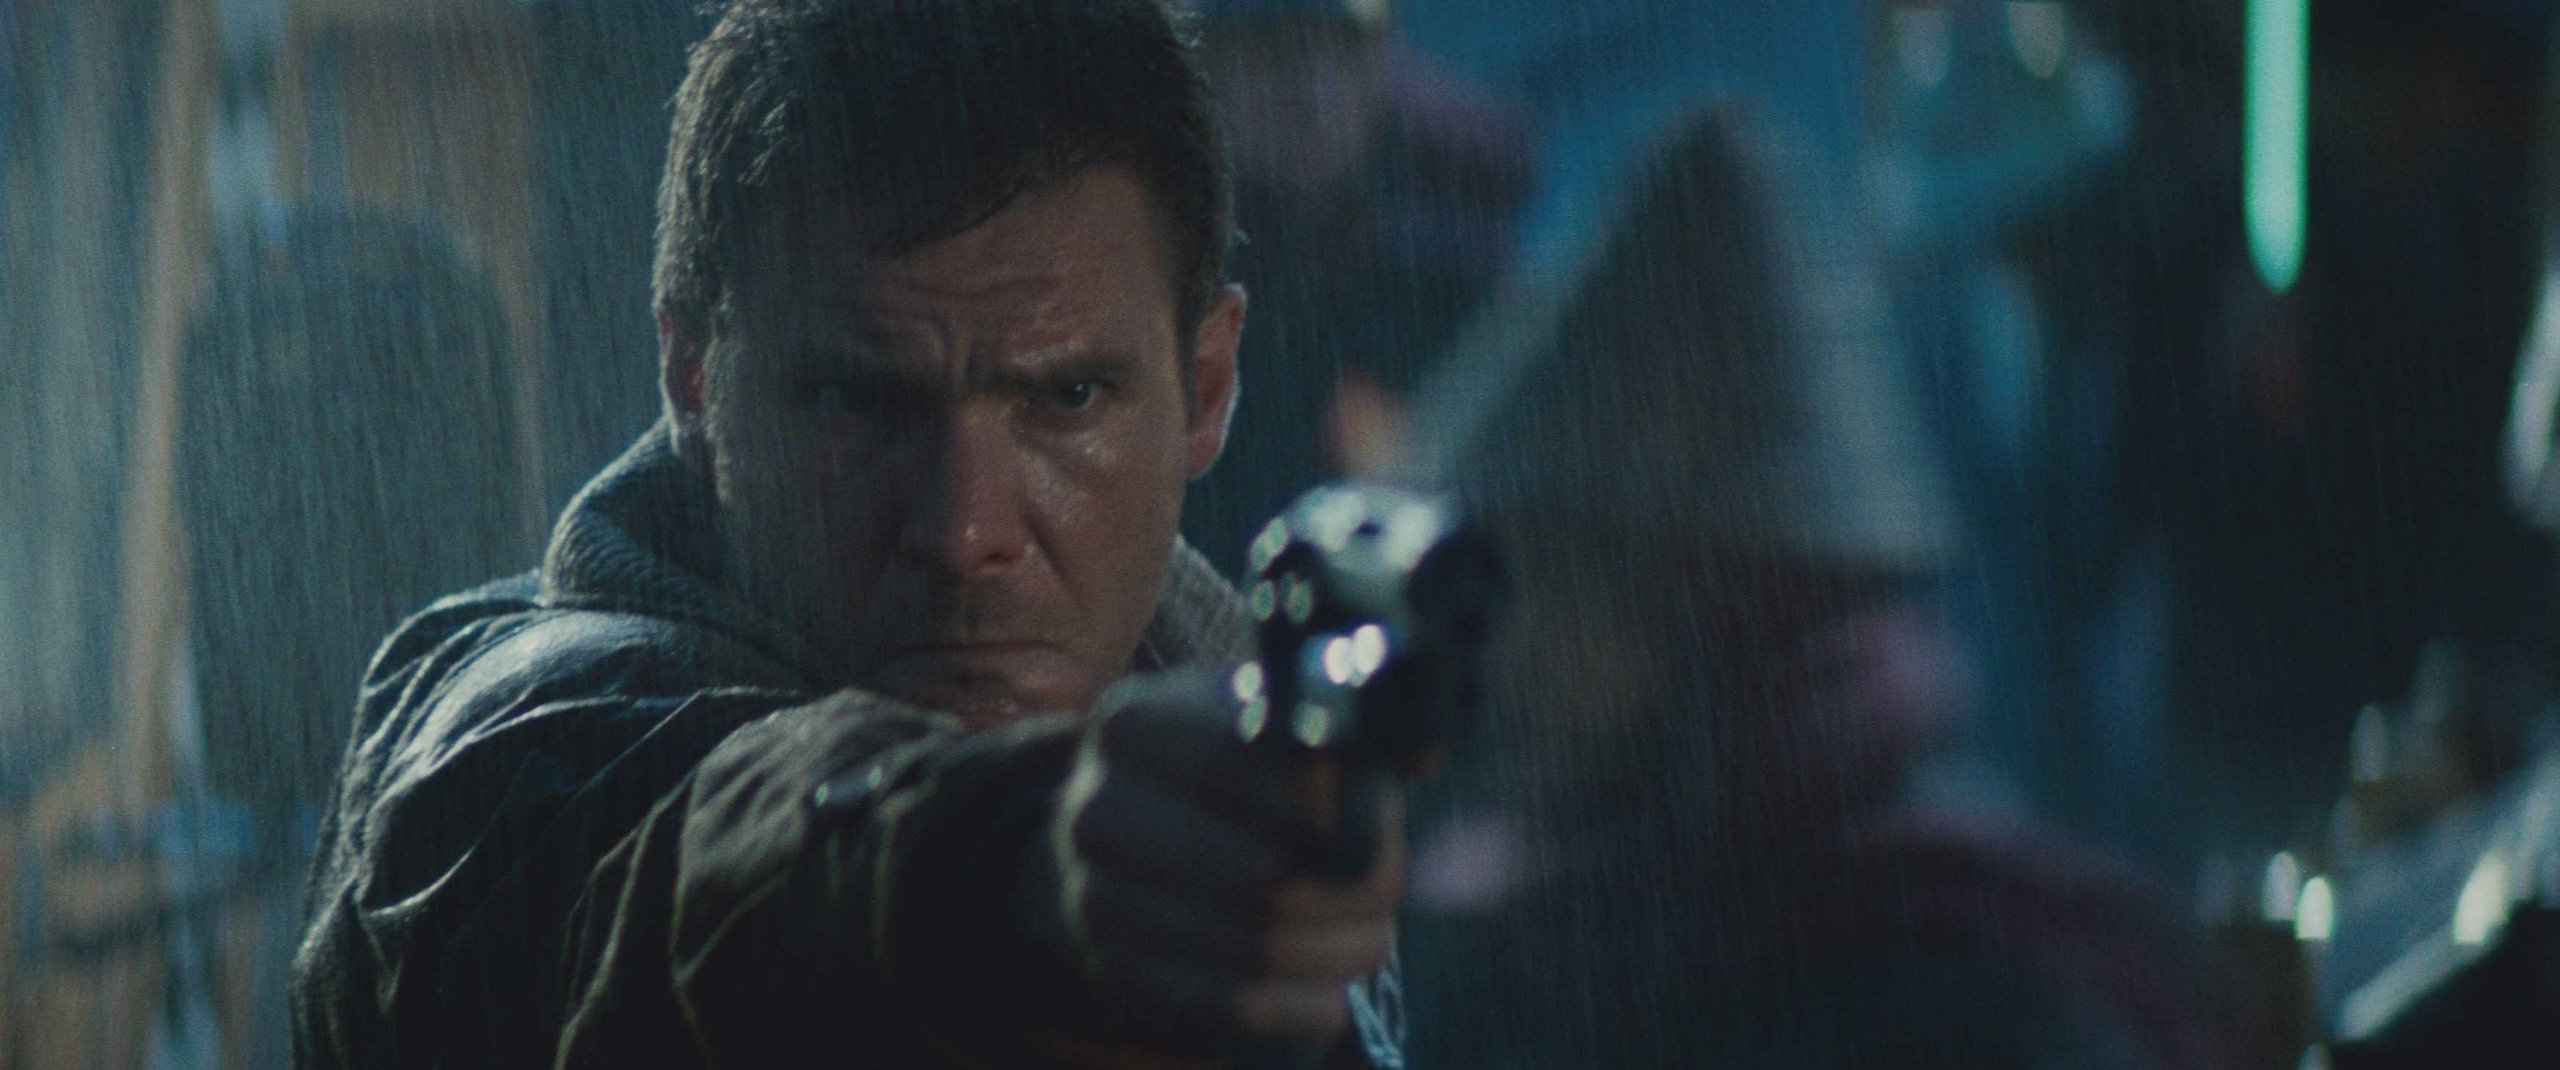 Harrison-Ford-as-Deckard-in-Bladerunner-blade-runner-8229947-2560-1070